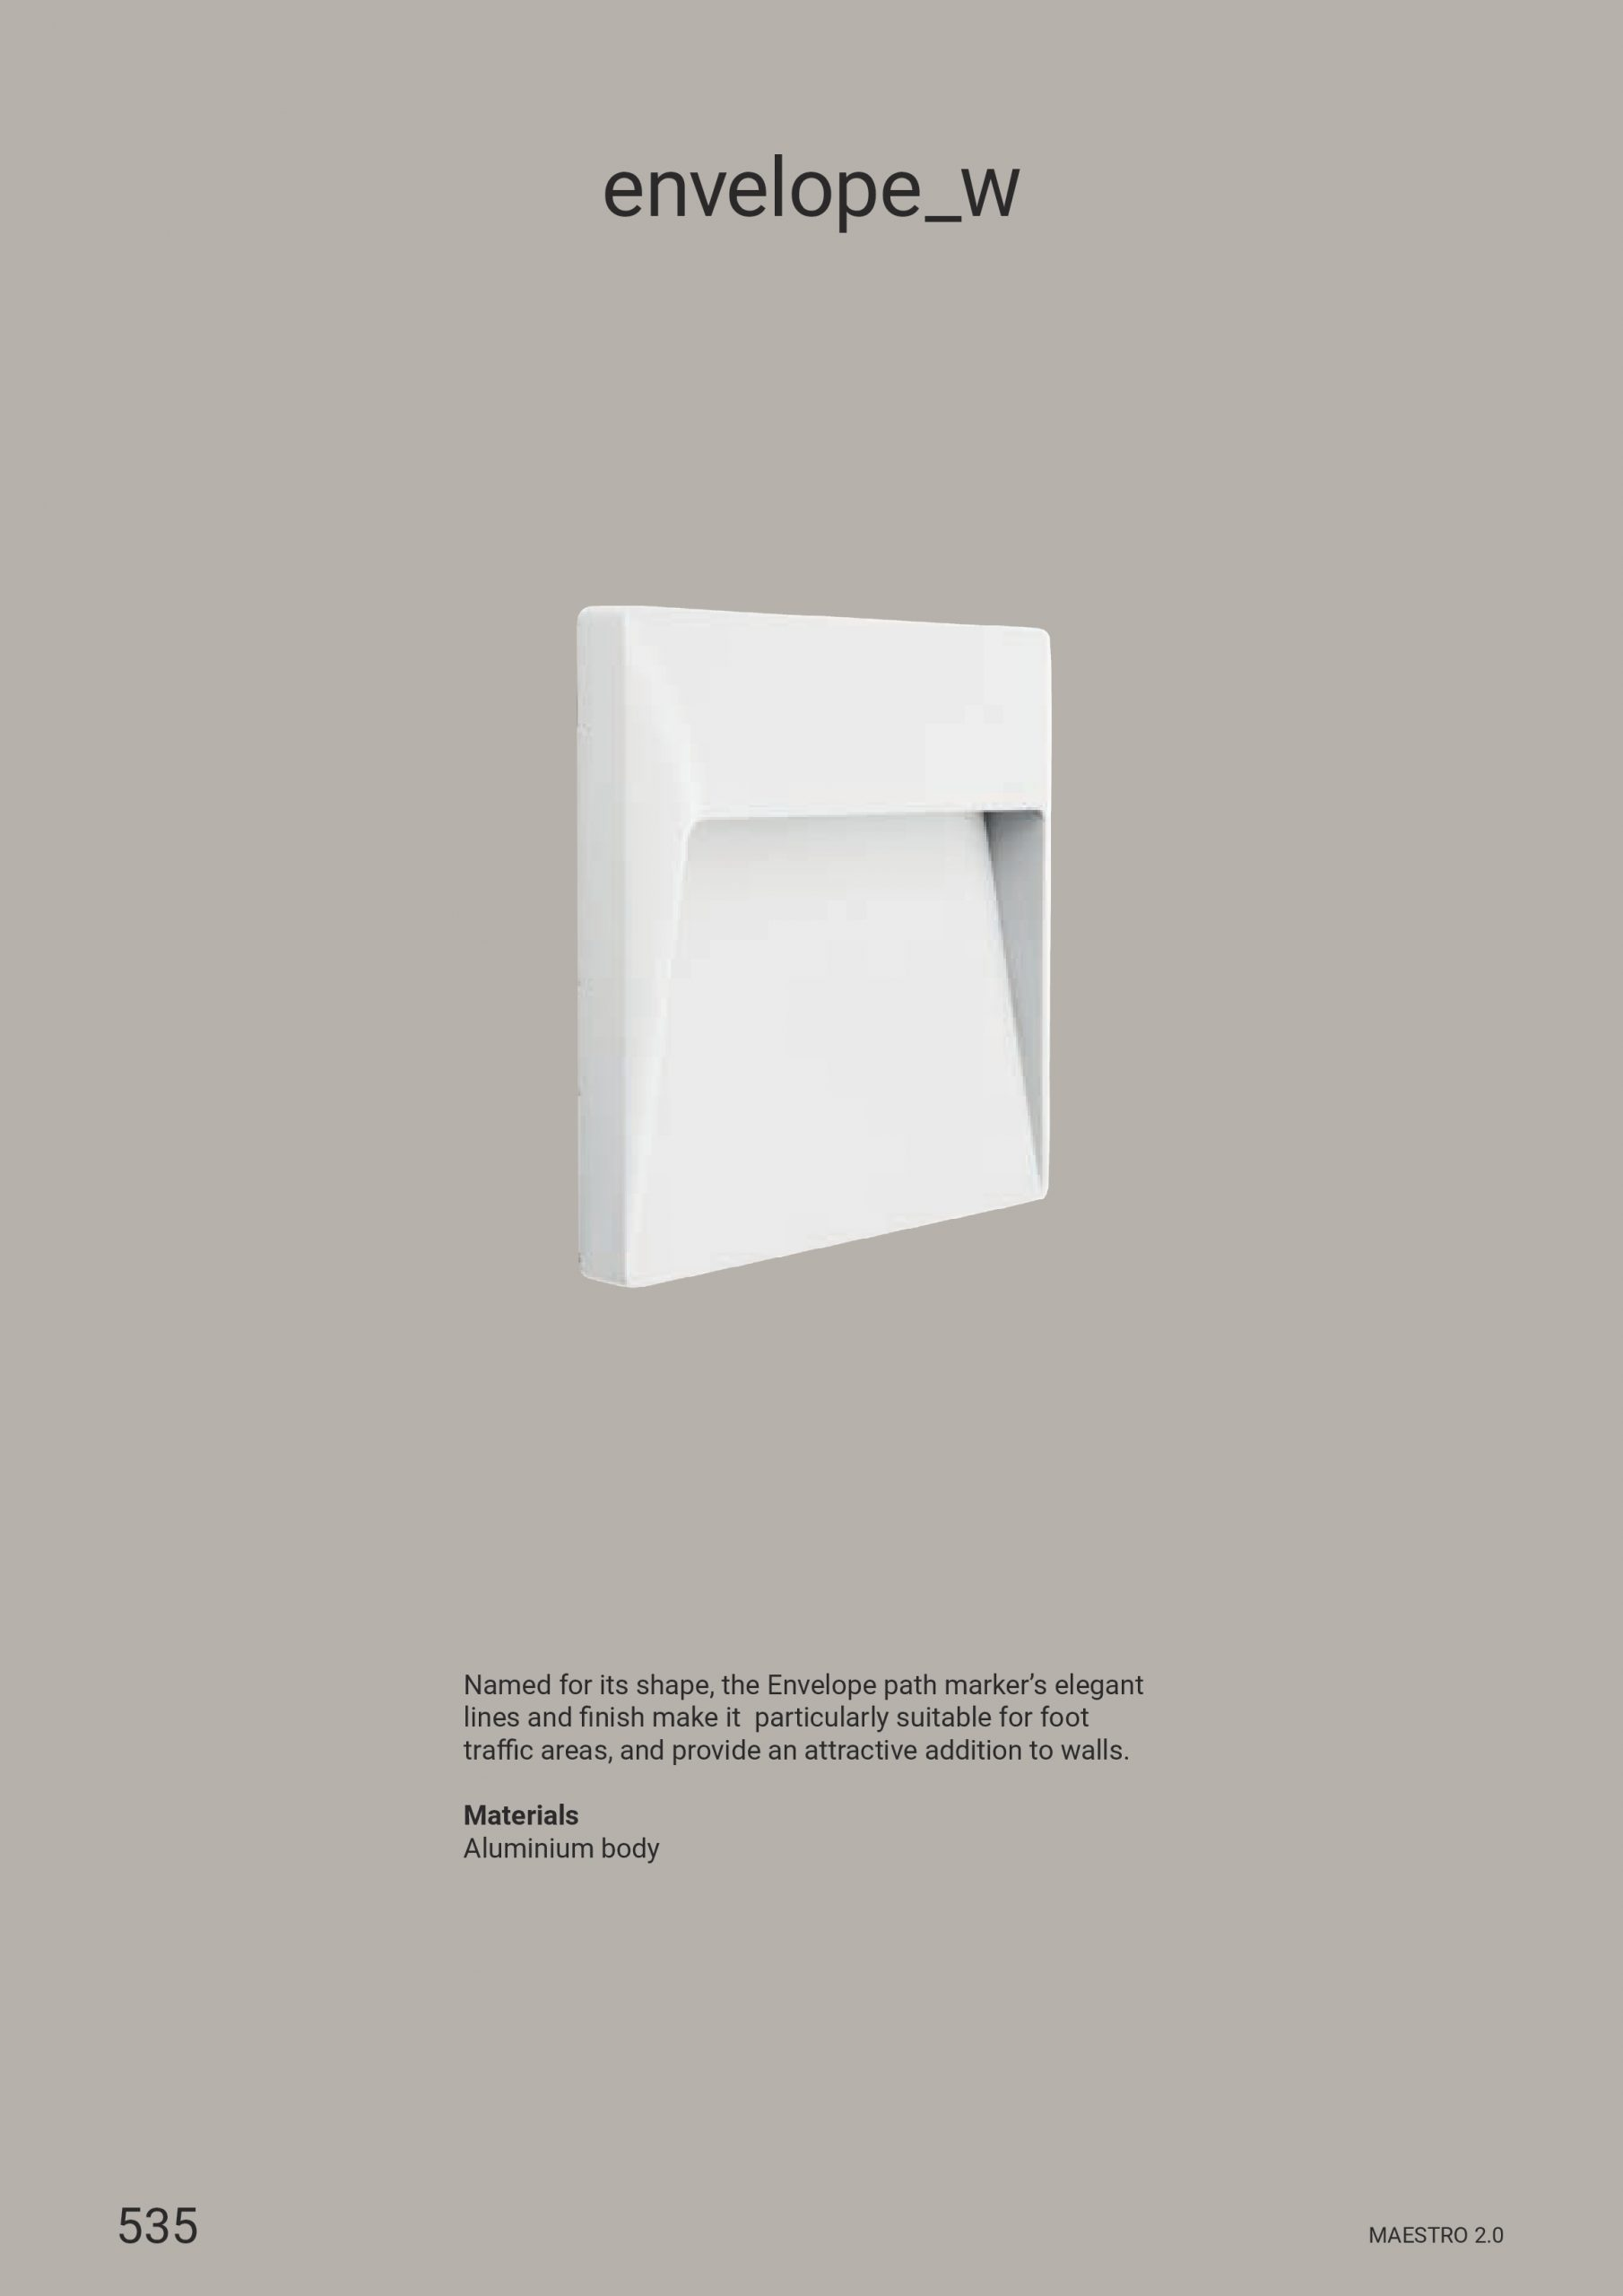 Linea Light – Envelope_W